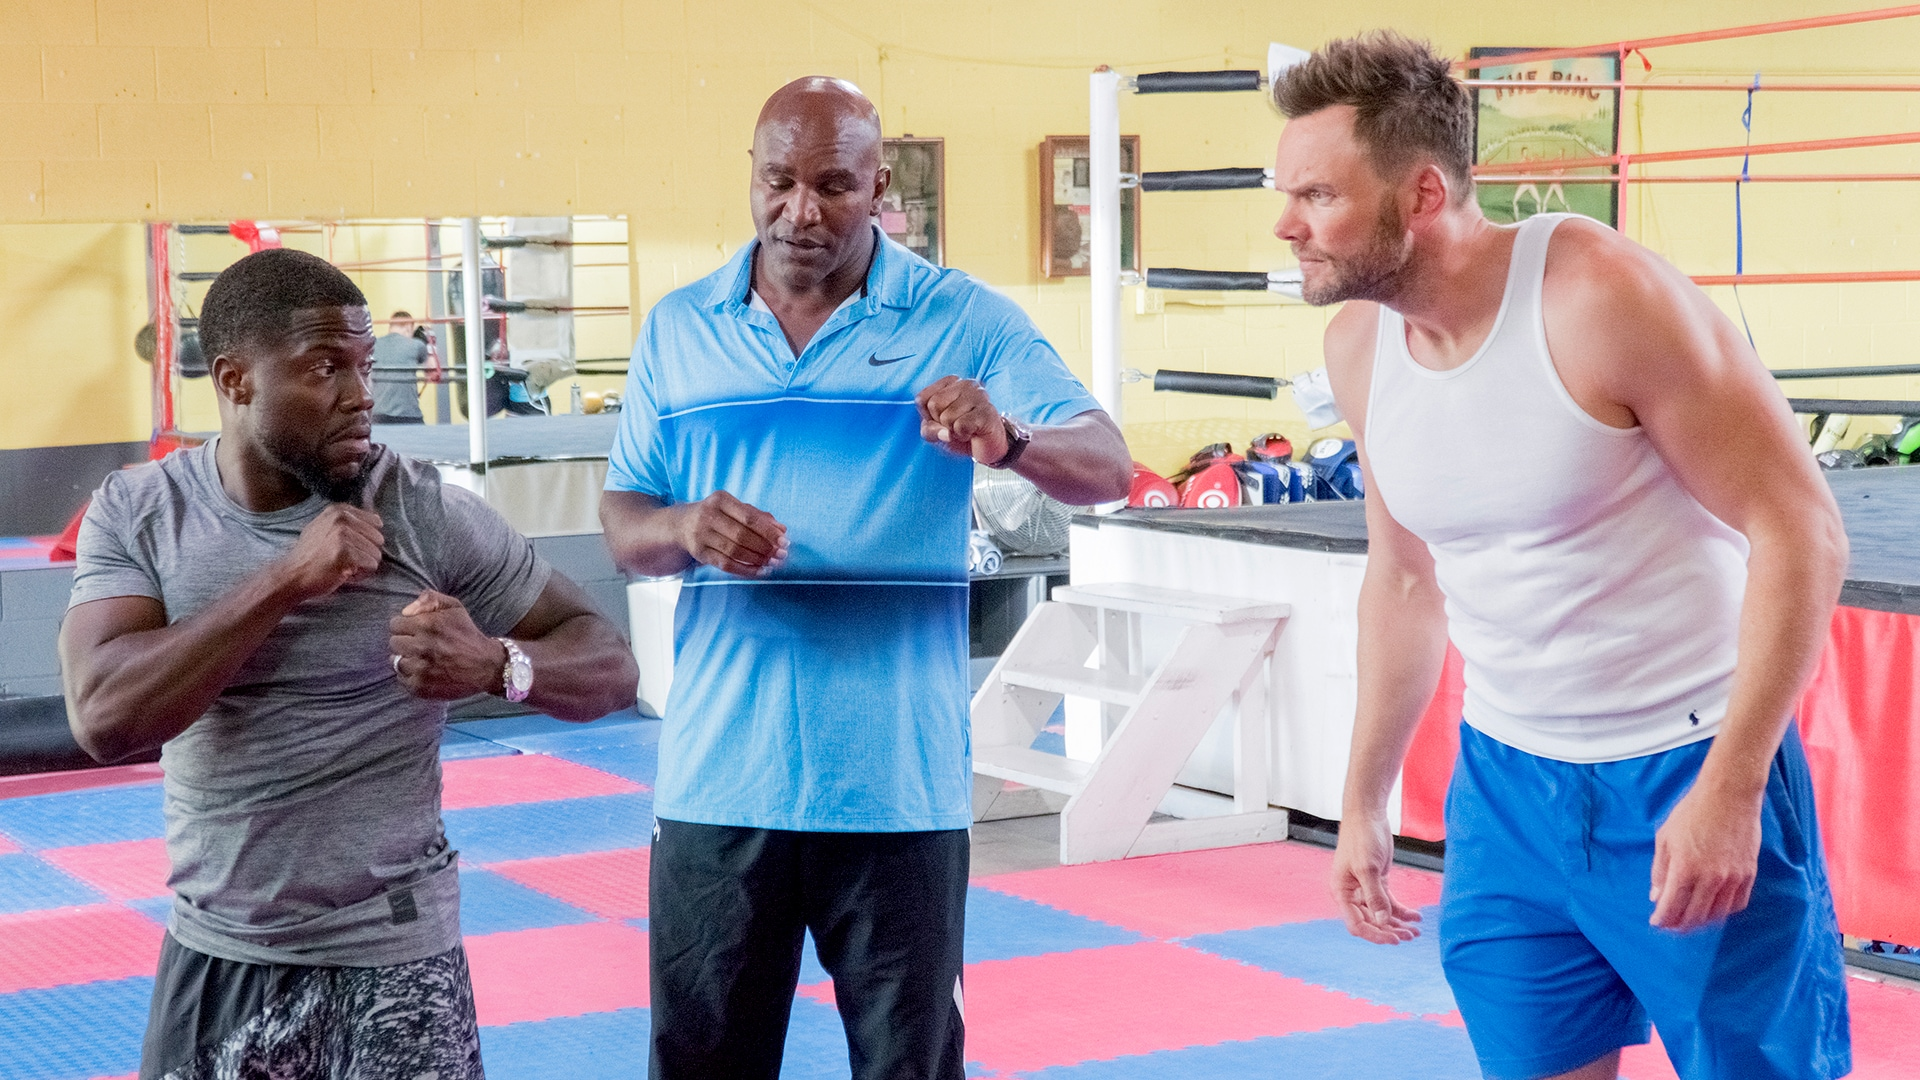 Boxing with Evander Holyfield and Joel McHale